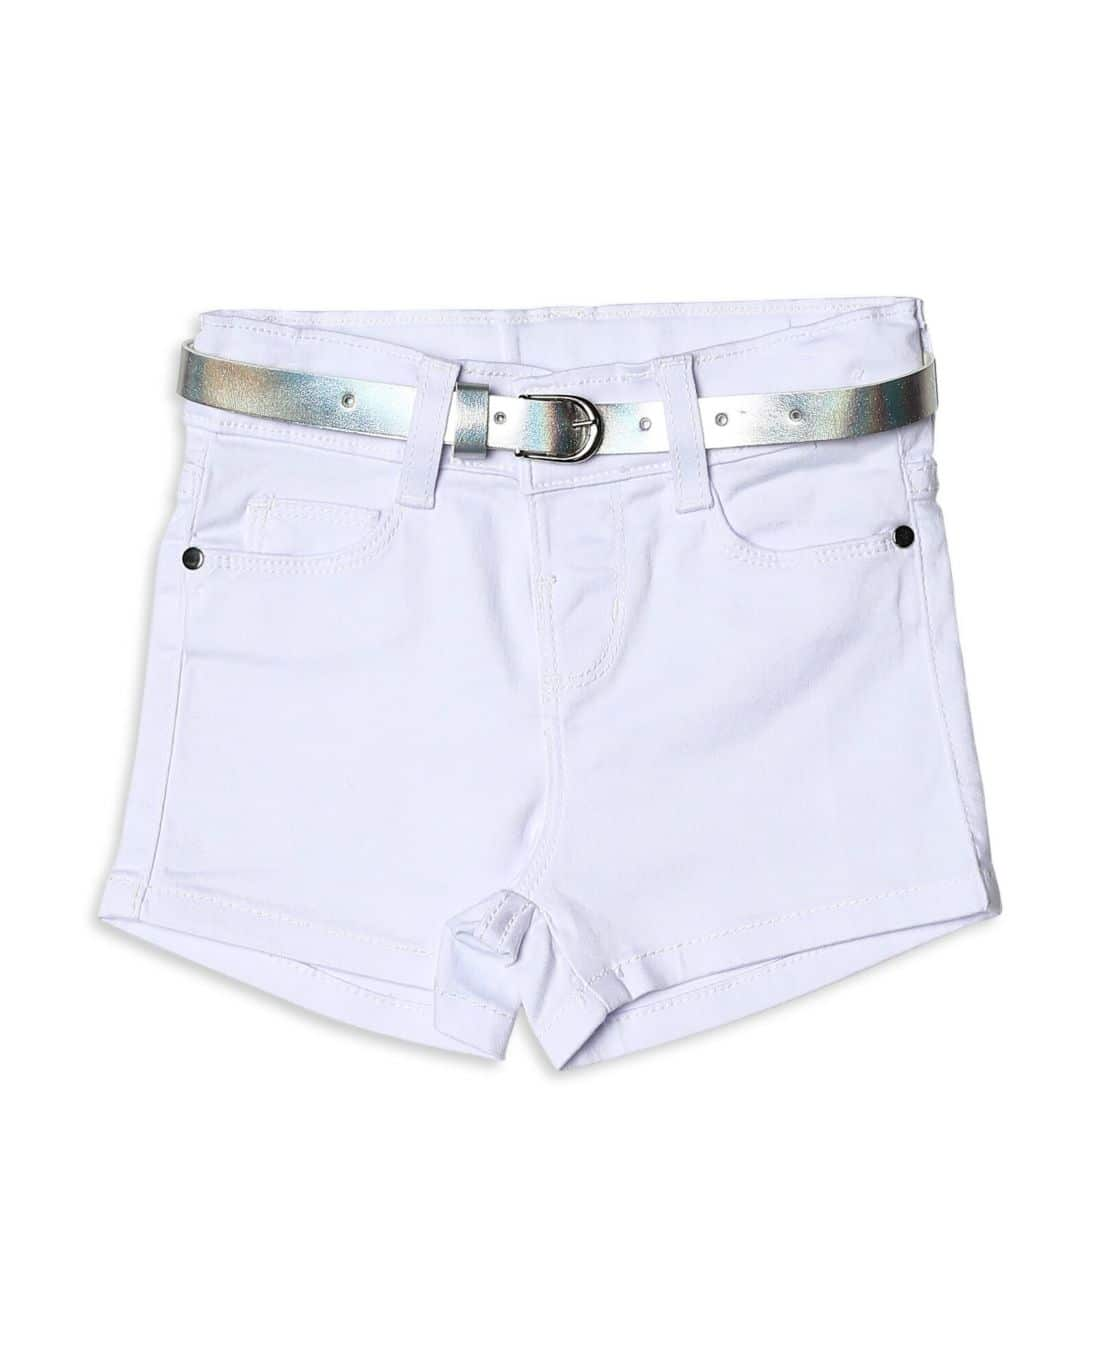 Short Sarja Color - Branco